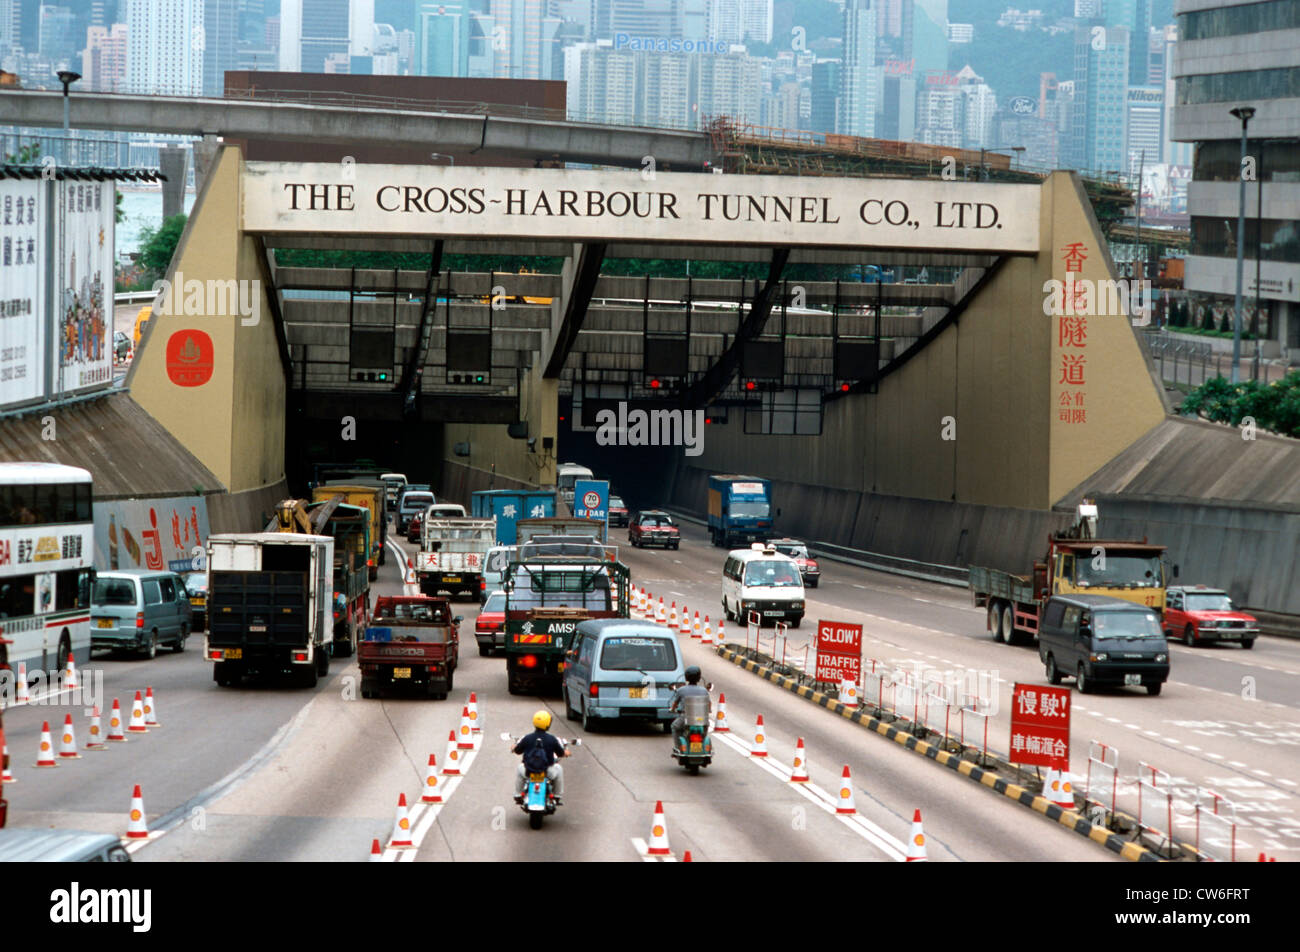 entrance to cross harbour tunnel china hong kong stock photo royalty free image 49931276 alamy. Black Bedroom Furniture Sets. Home Design Ideas